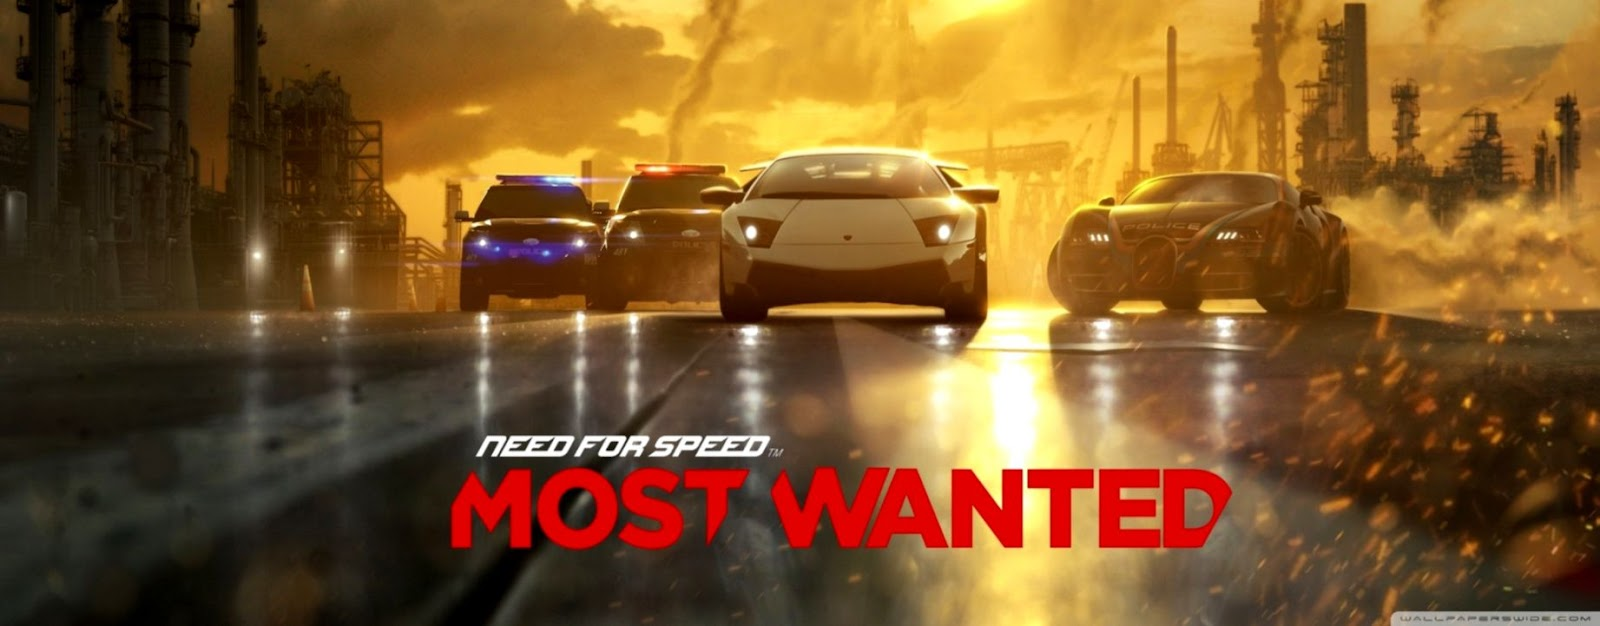 Need For Speed Most Wanted 2012 Wallpaper 1080p Kingdom